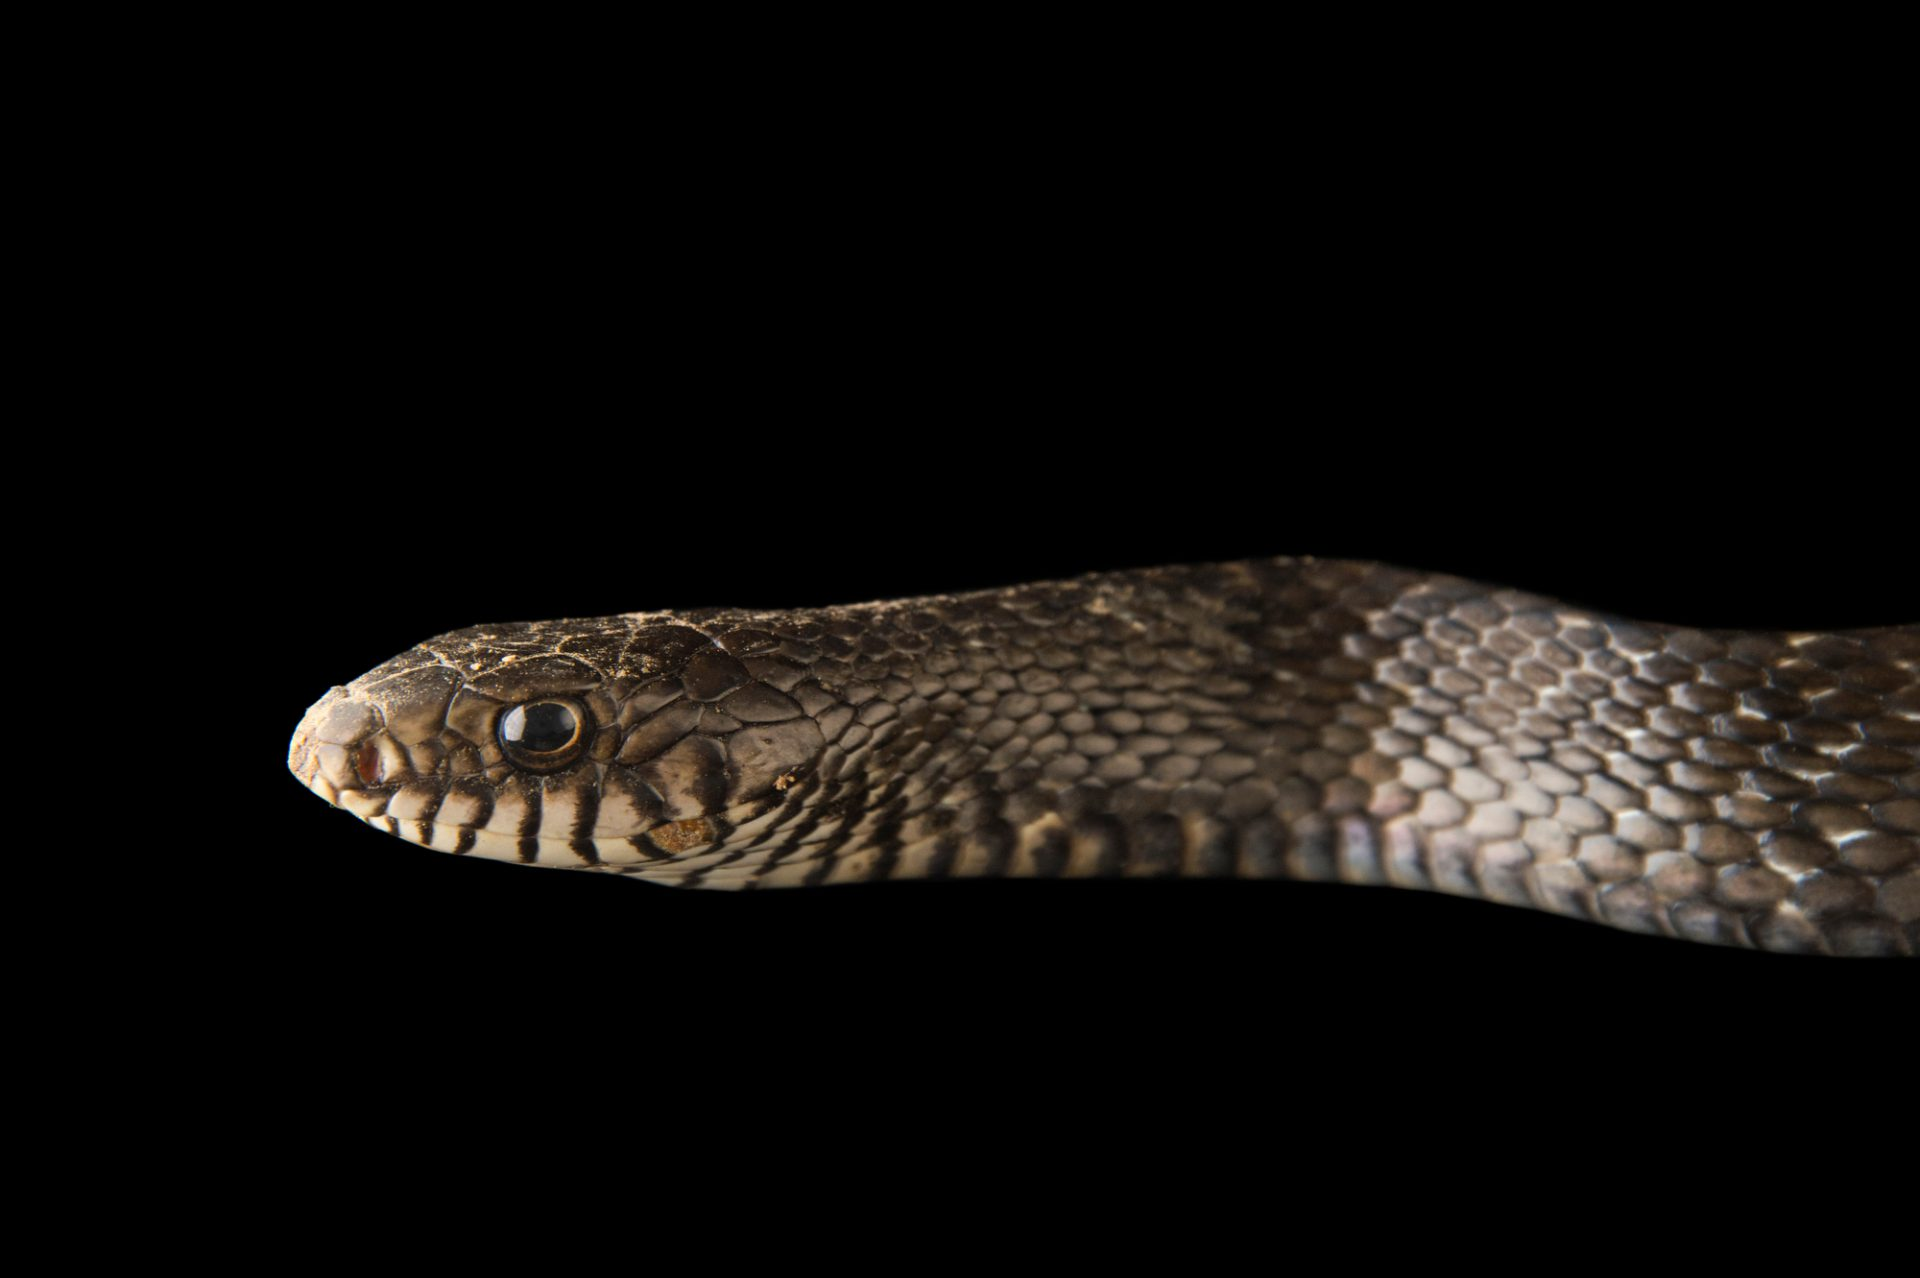 Photo: Indian rat snake, Ptyas mucosus, at the Assam State Zoo in Guwahati, Assam, India.